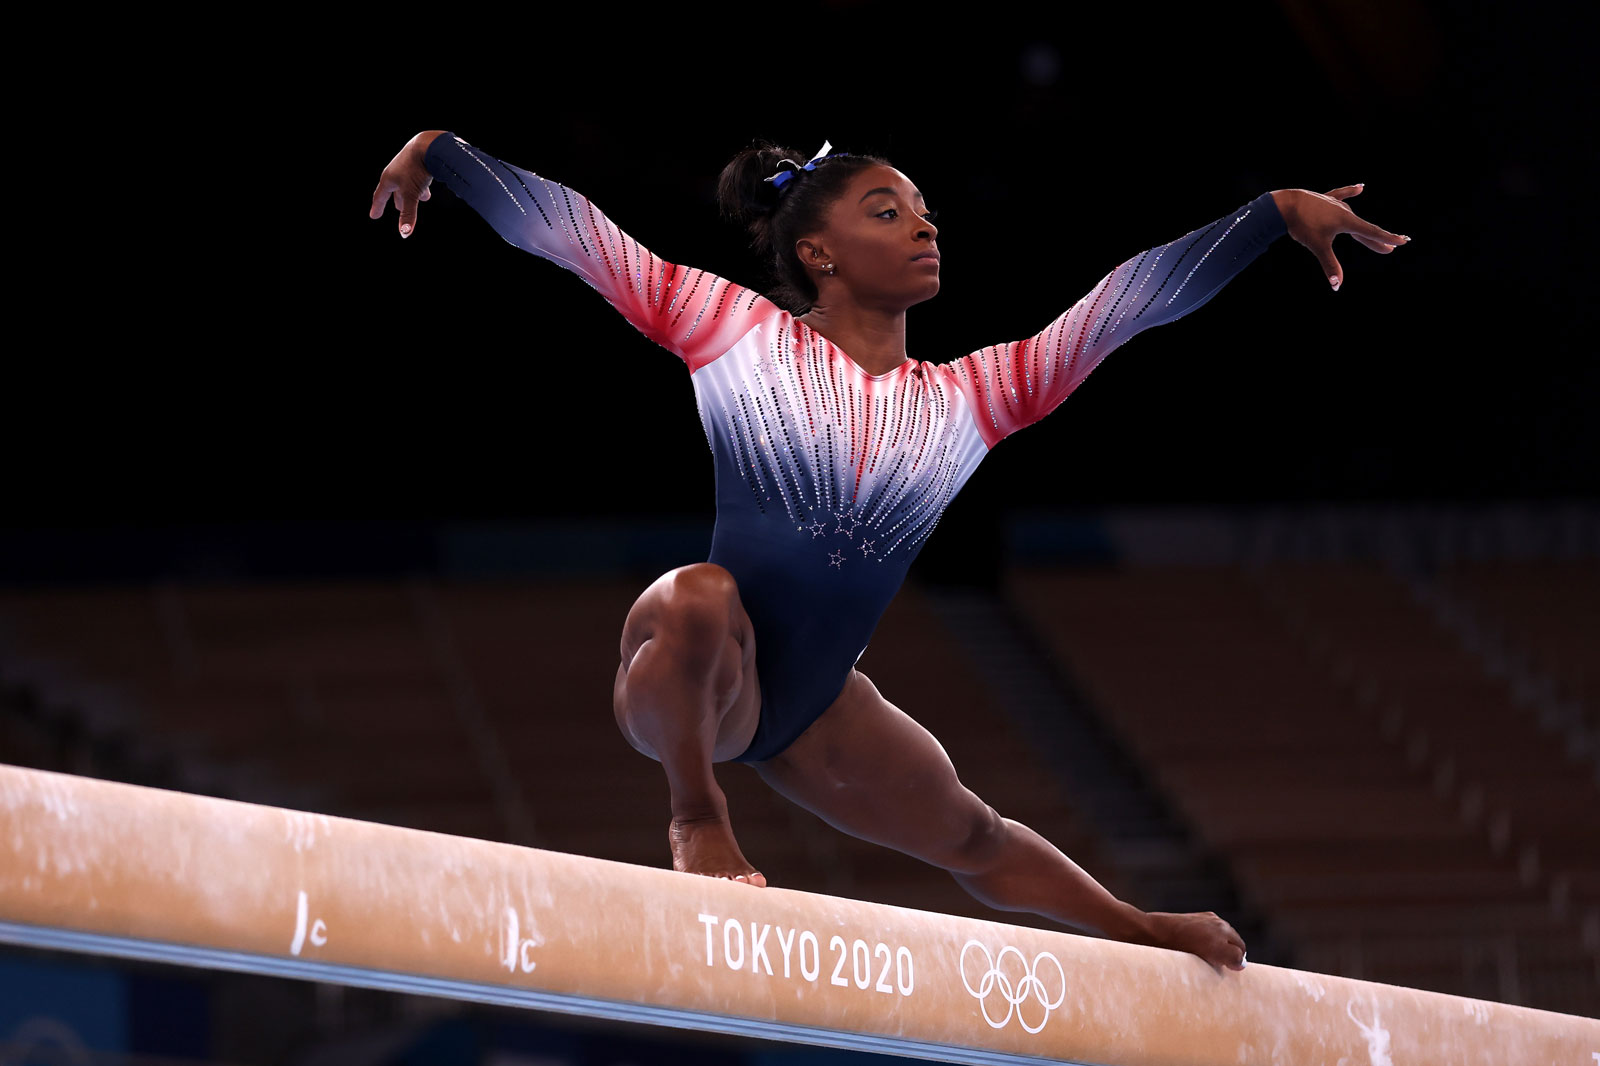 Simone Biles warms up on the balance beam prior to Tuesday's final.